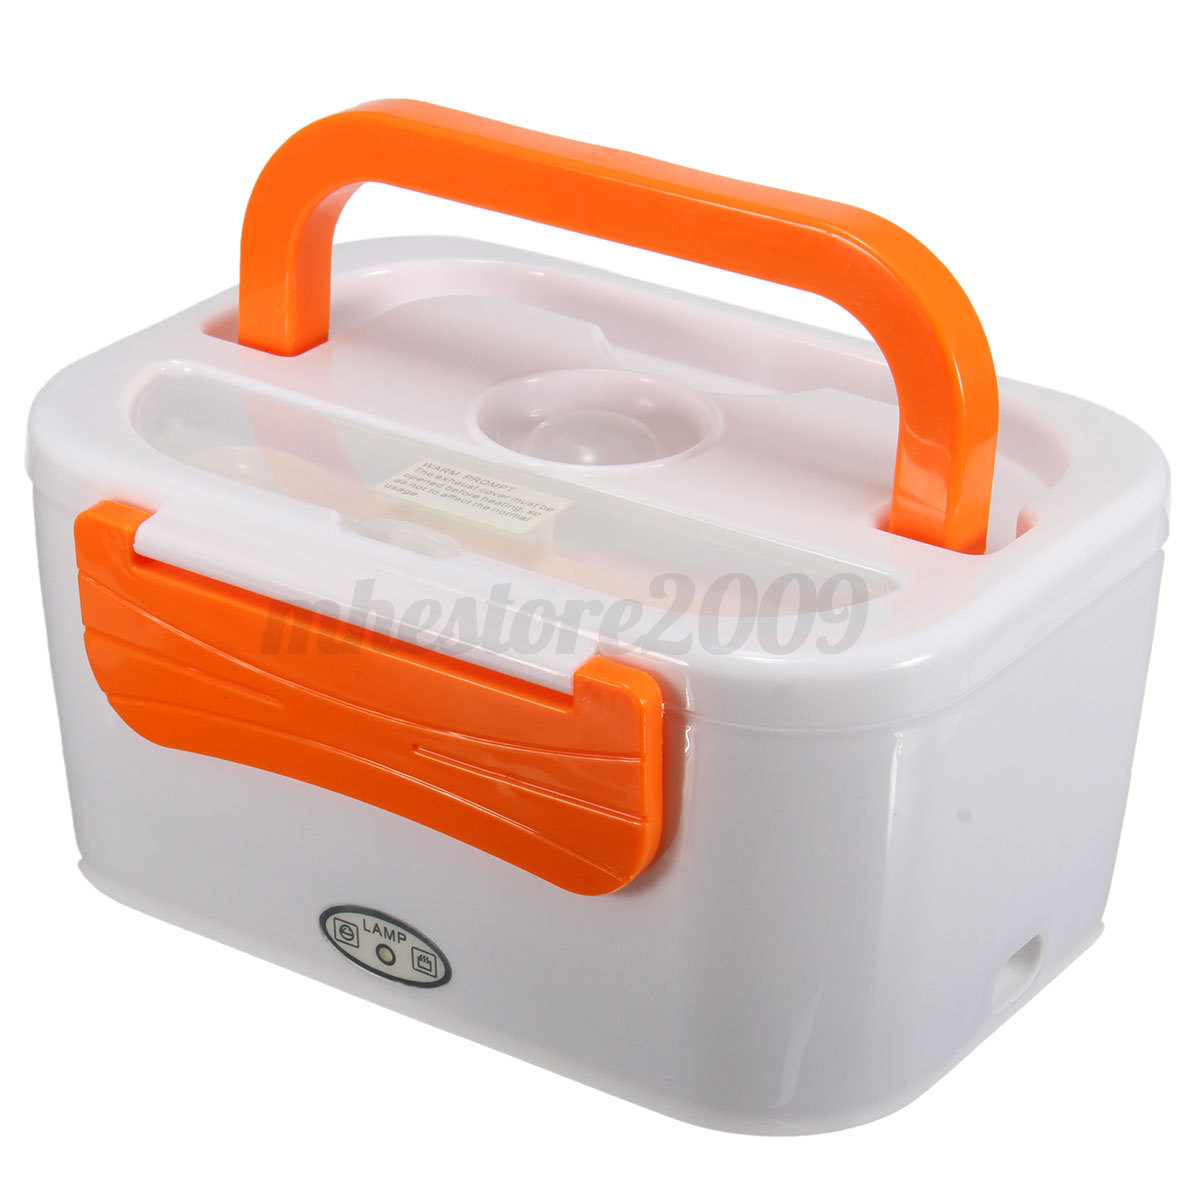 electric portable heated compact food warmer lunch bento box 45w 220v ebay. Black Bedroom Furniture Sets. Home Design Ideas